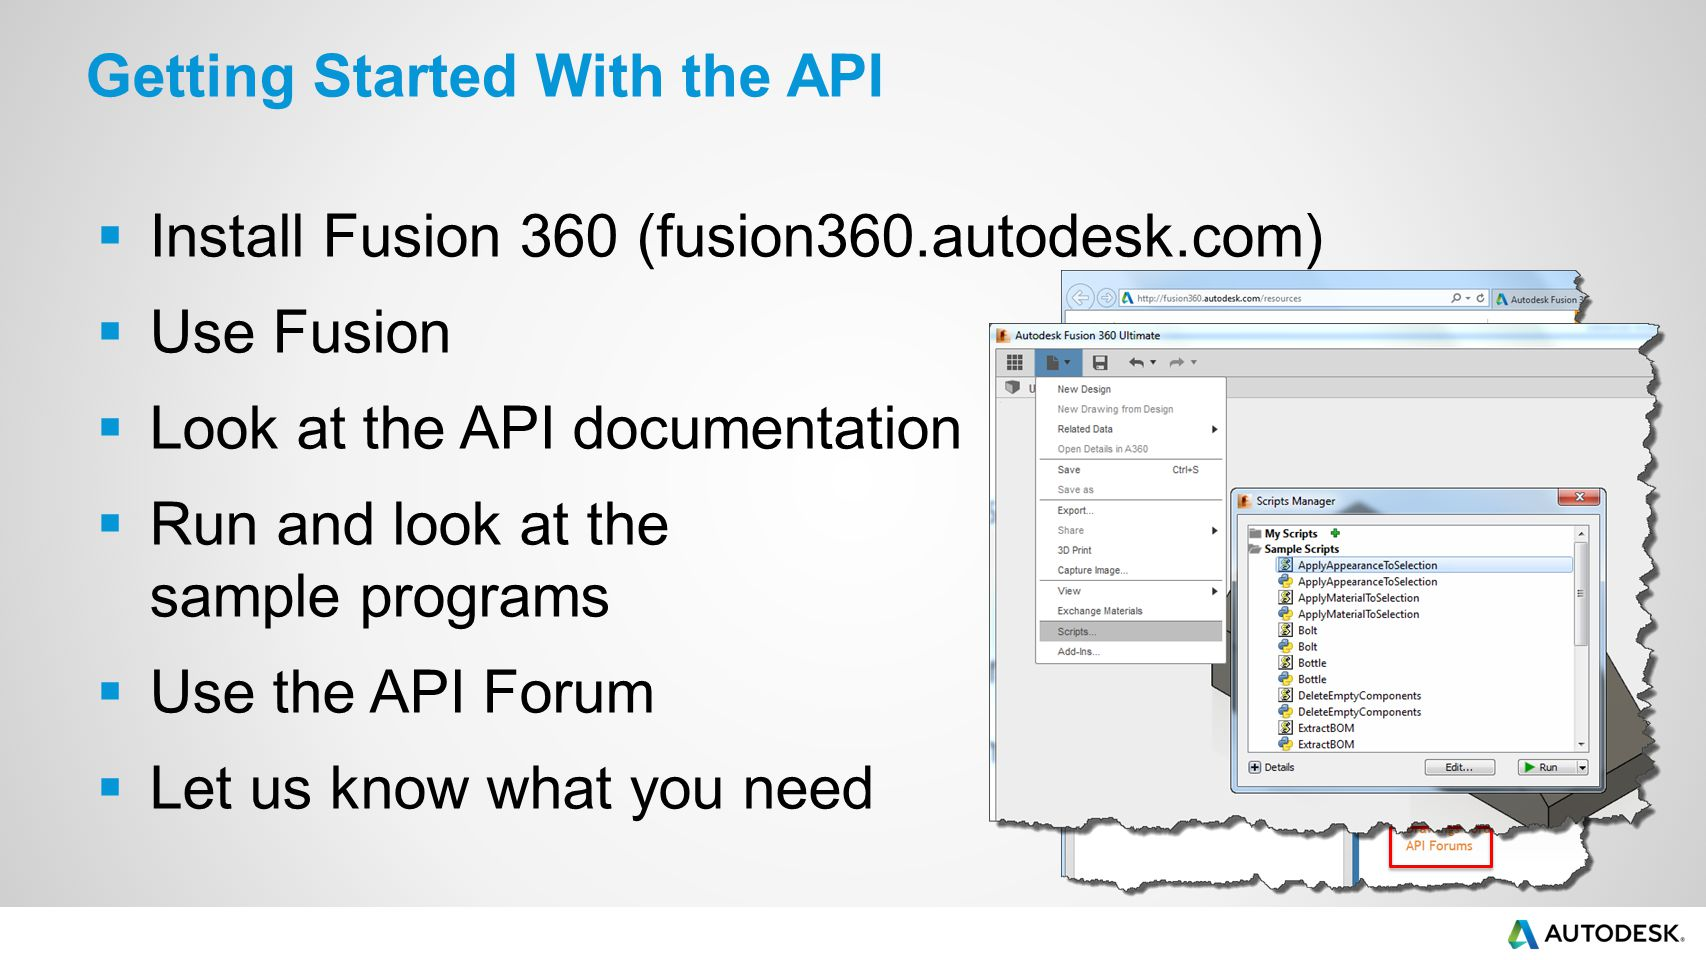 Getting Started with Fusion 360's API - ppt video online download